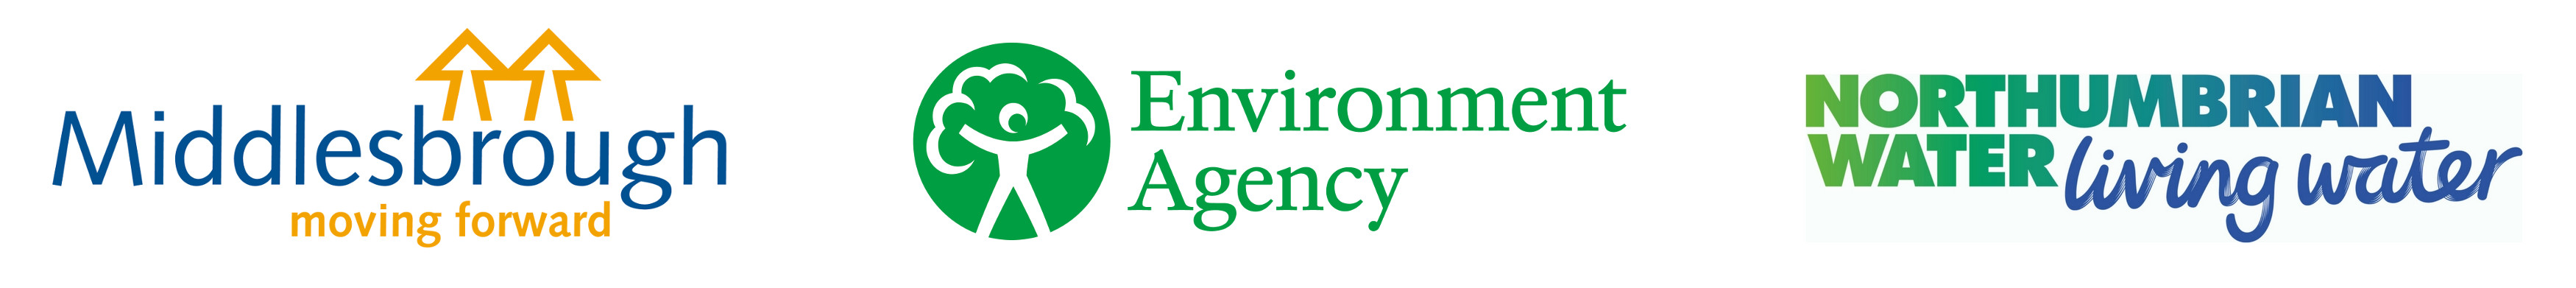 Logos for Middlesbrough Council, the Environment Agency, and Northumbrian Water